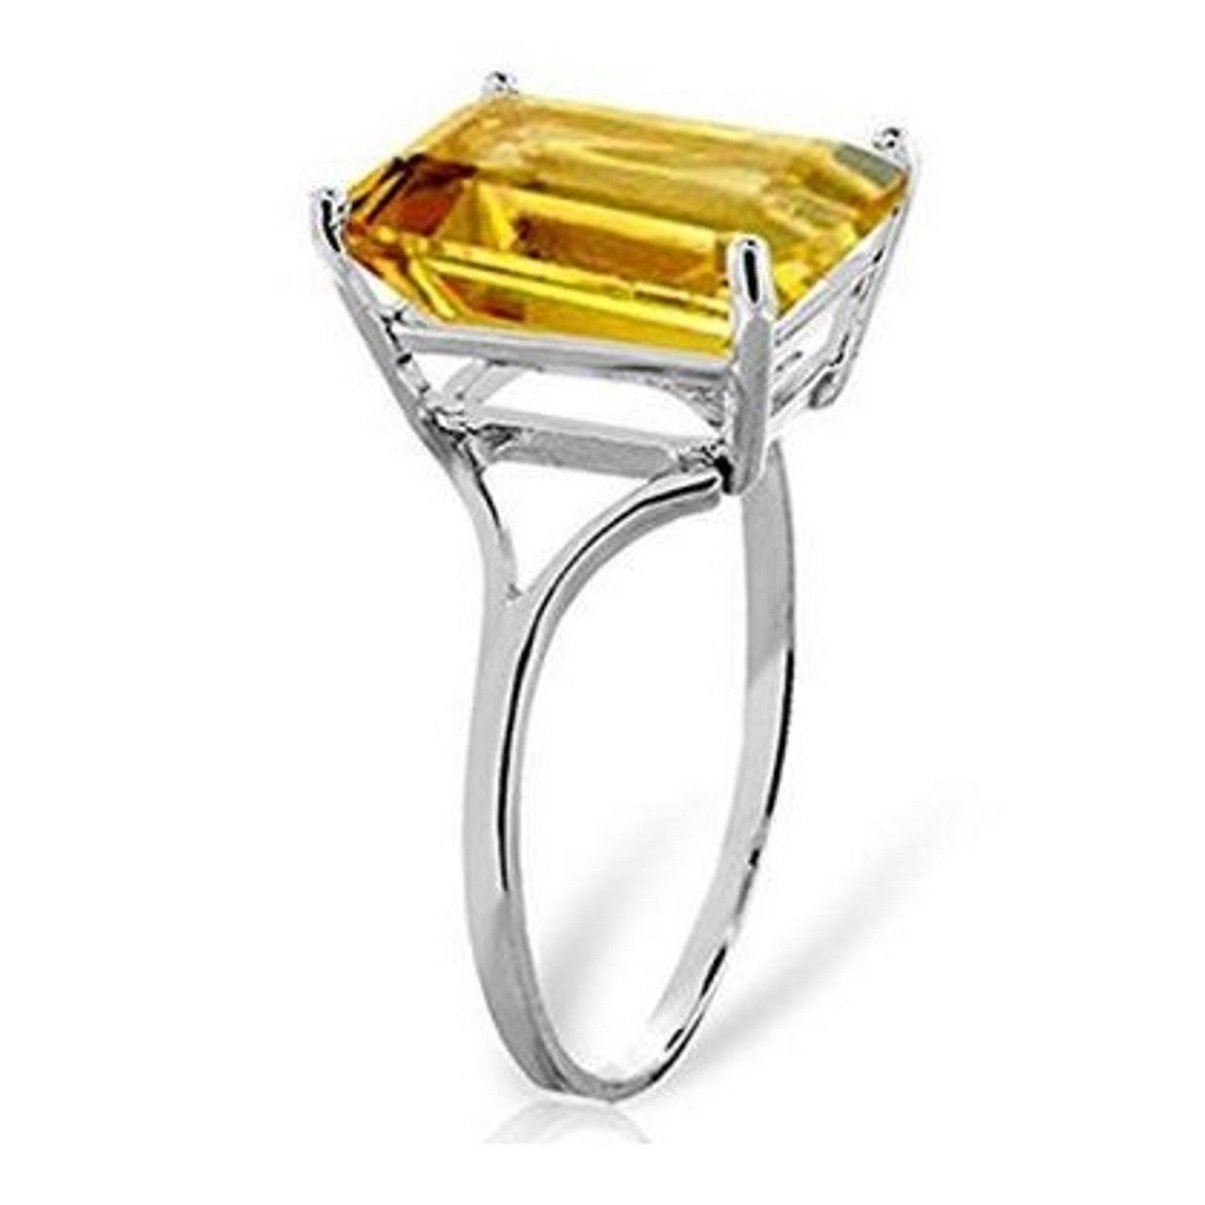 Large Emerald Cut Citrine Ring Email Size 14k White Gold 1799-W